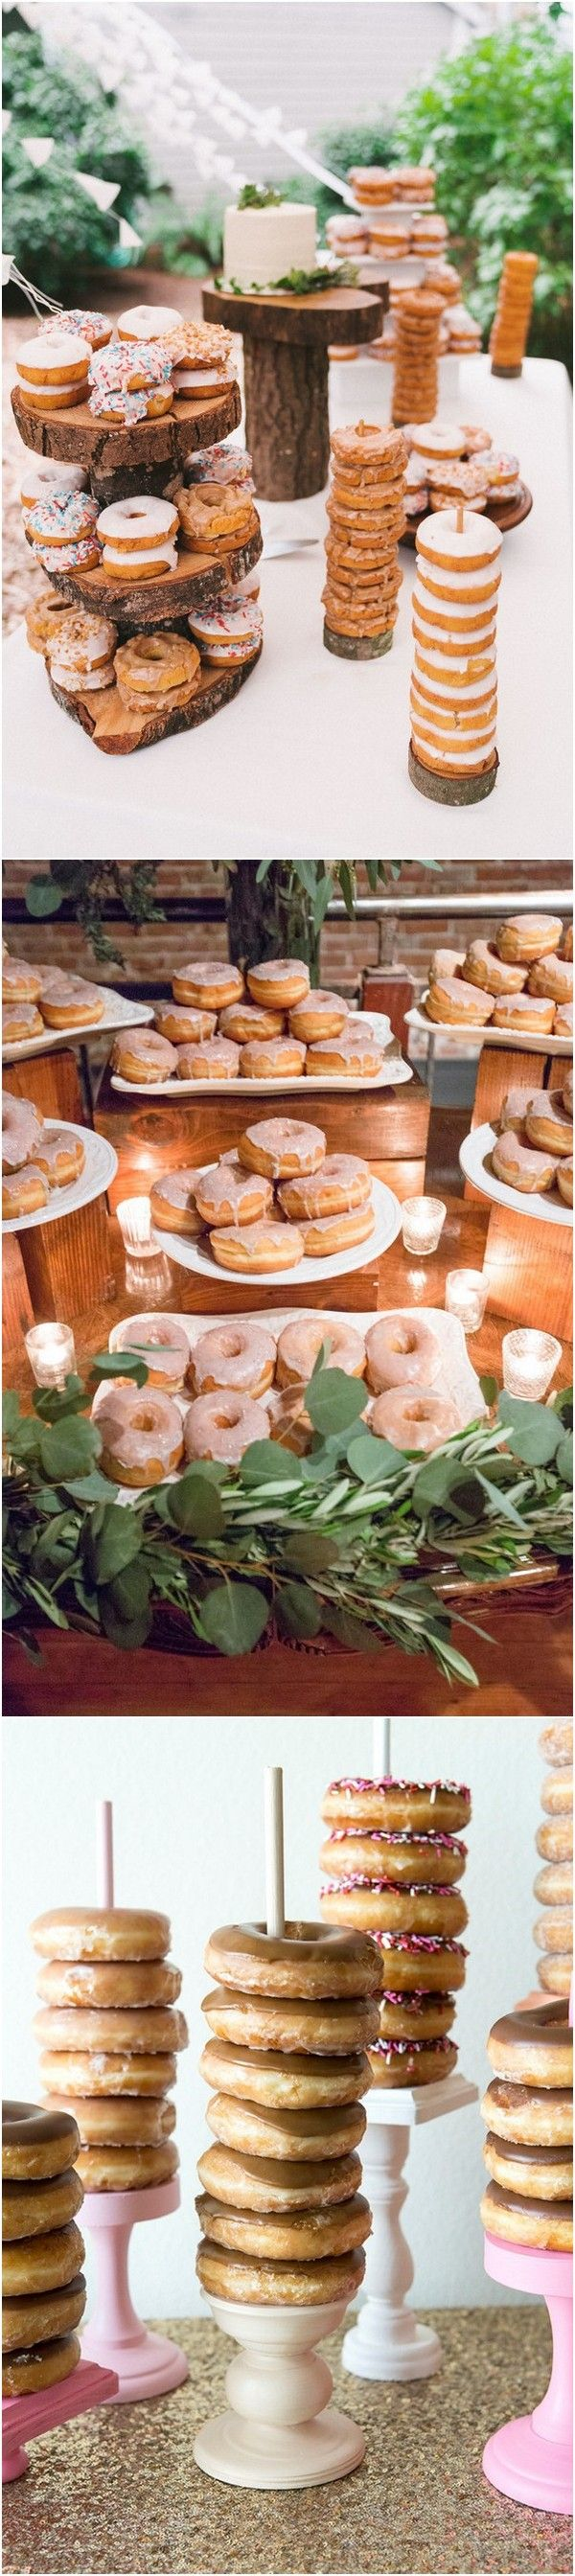 rustic wedding dessert table ideas with donuts